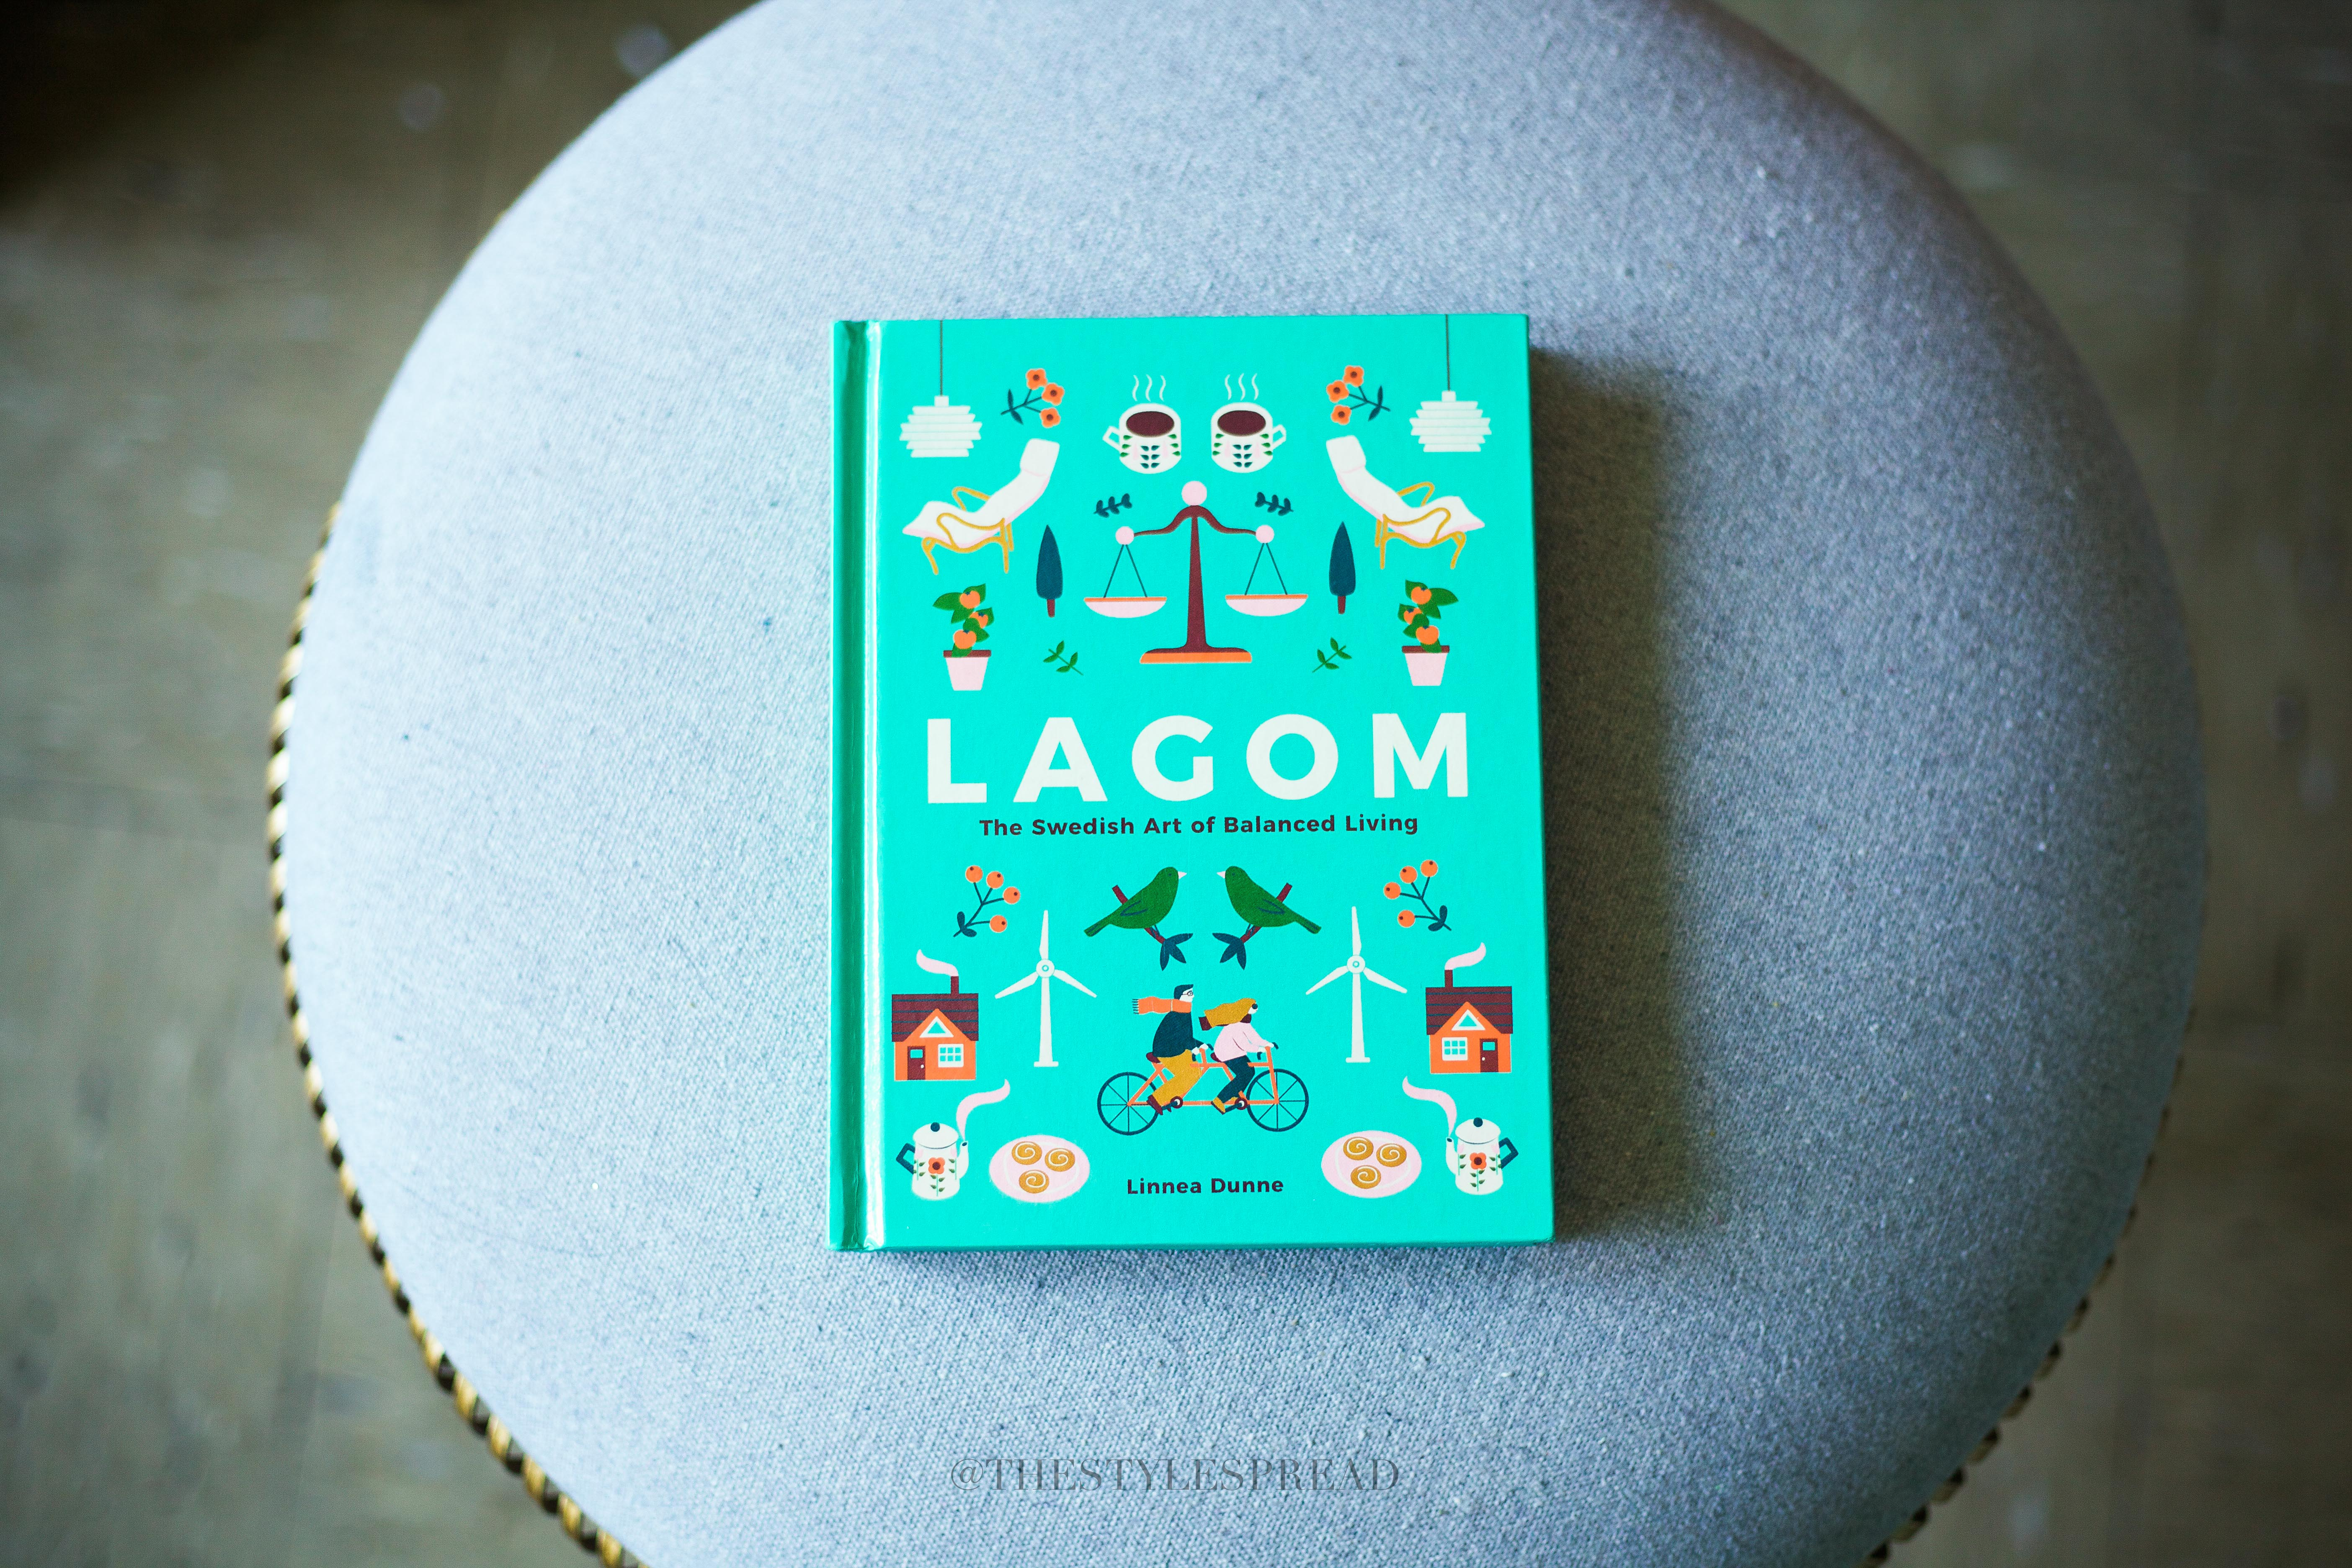 Lagom at home